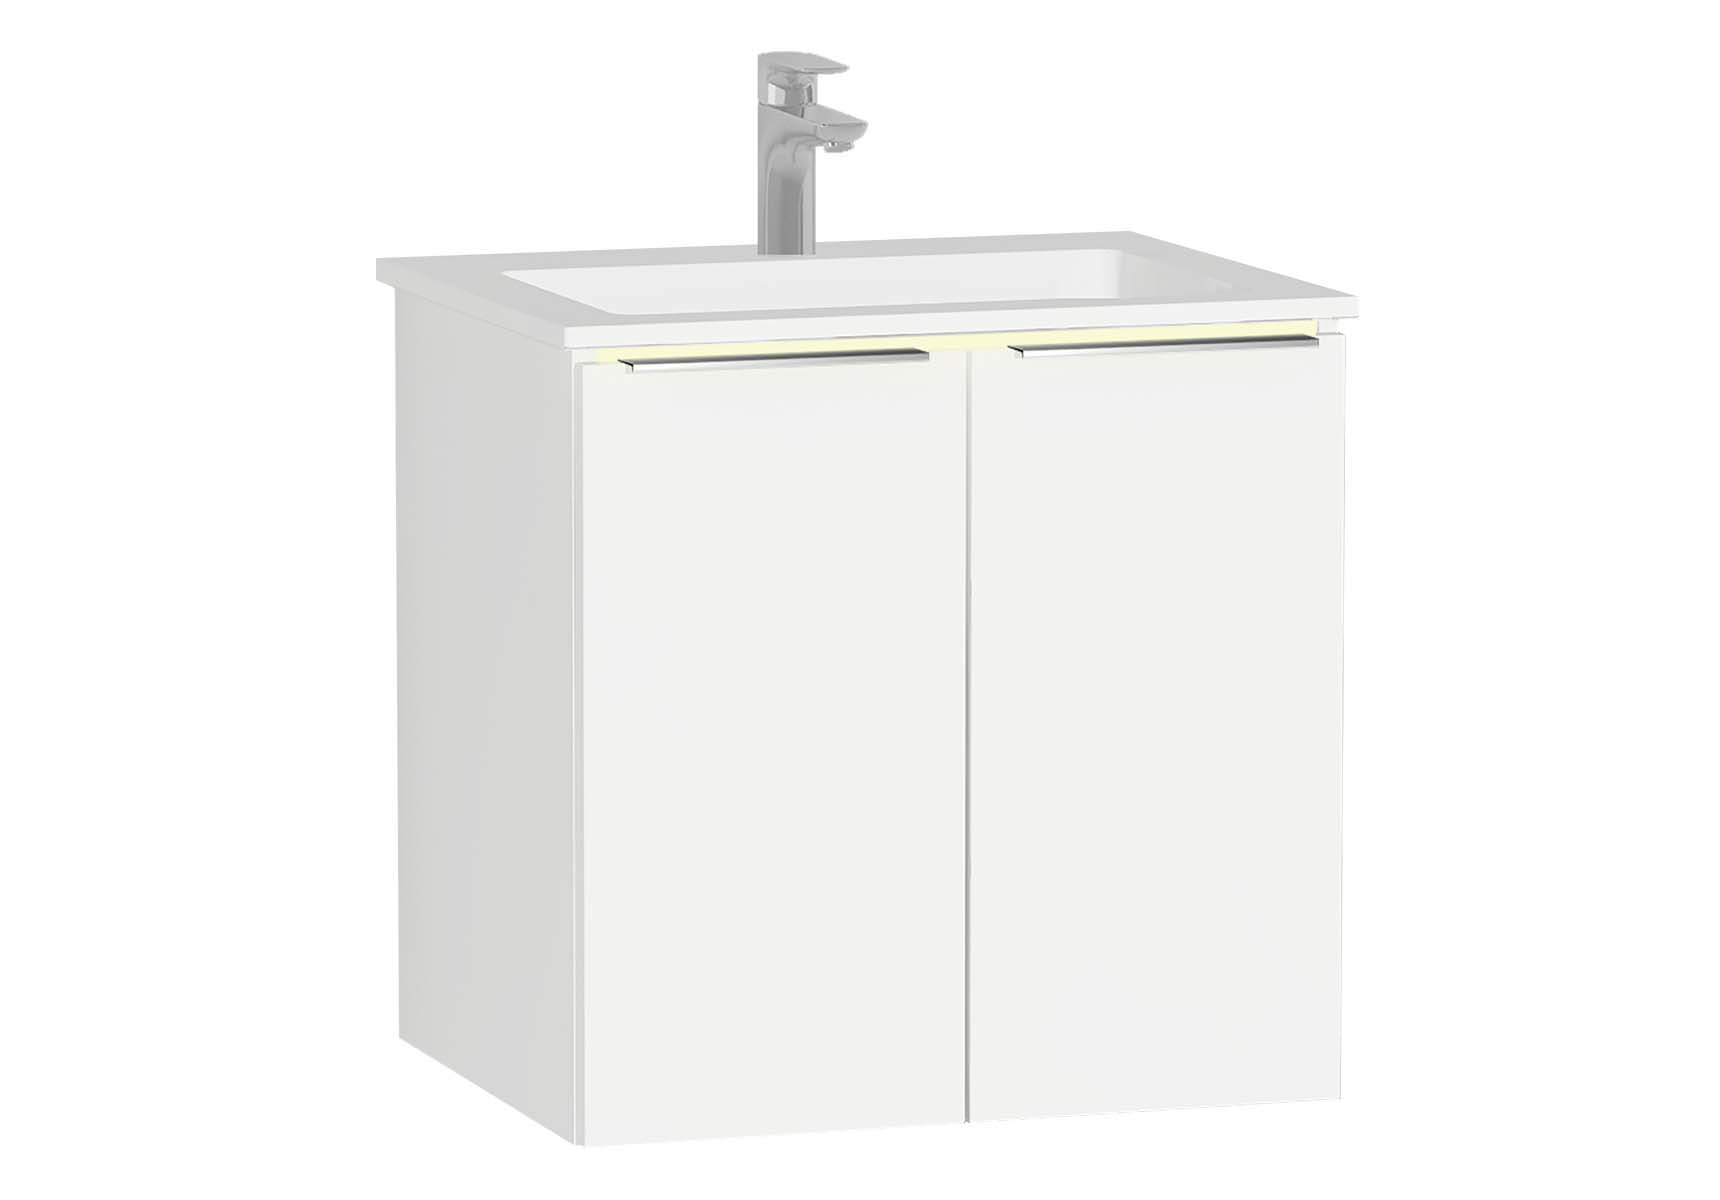 Central Washbasin Unit with doors, 60 cm, White High Gloss, Infinit Washbasin, Led